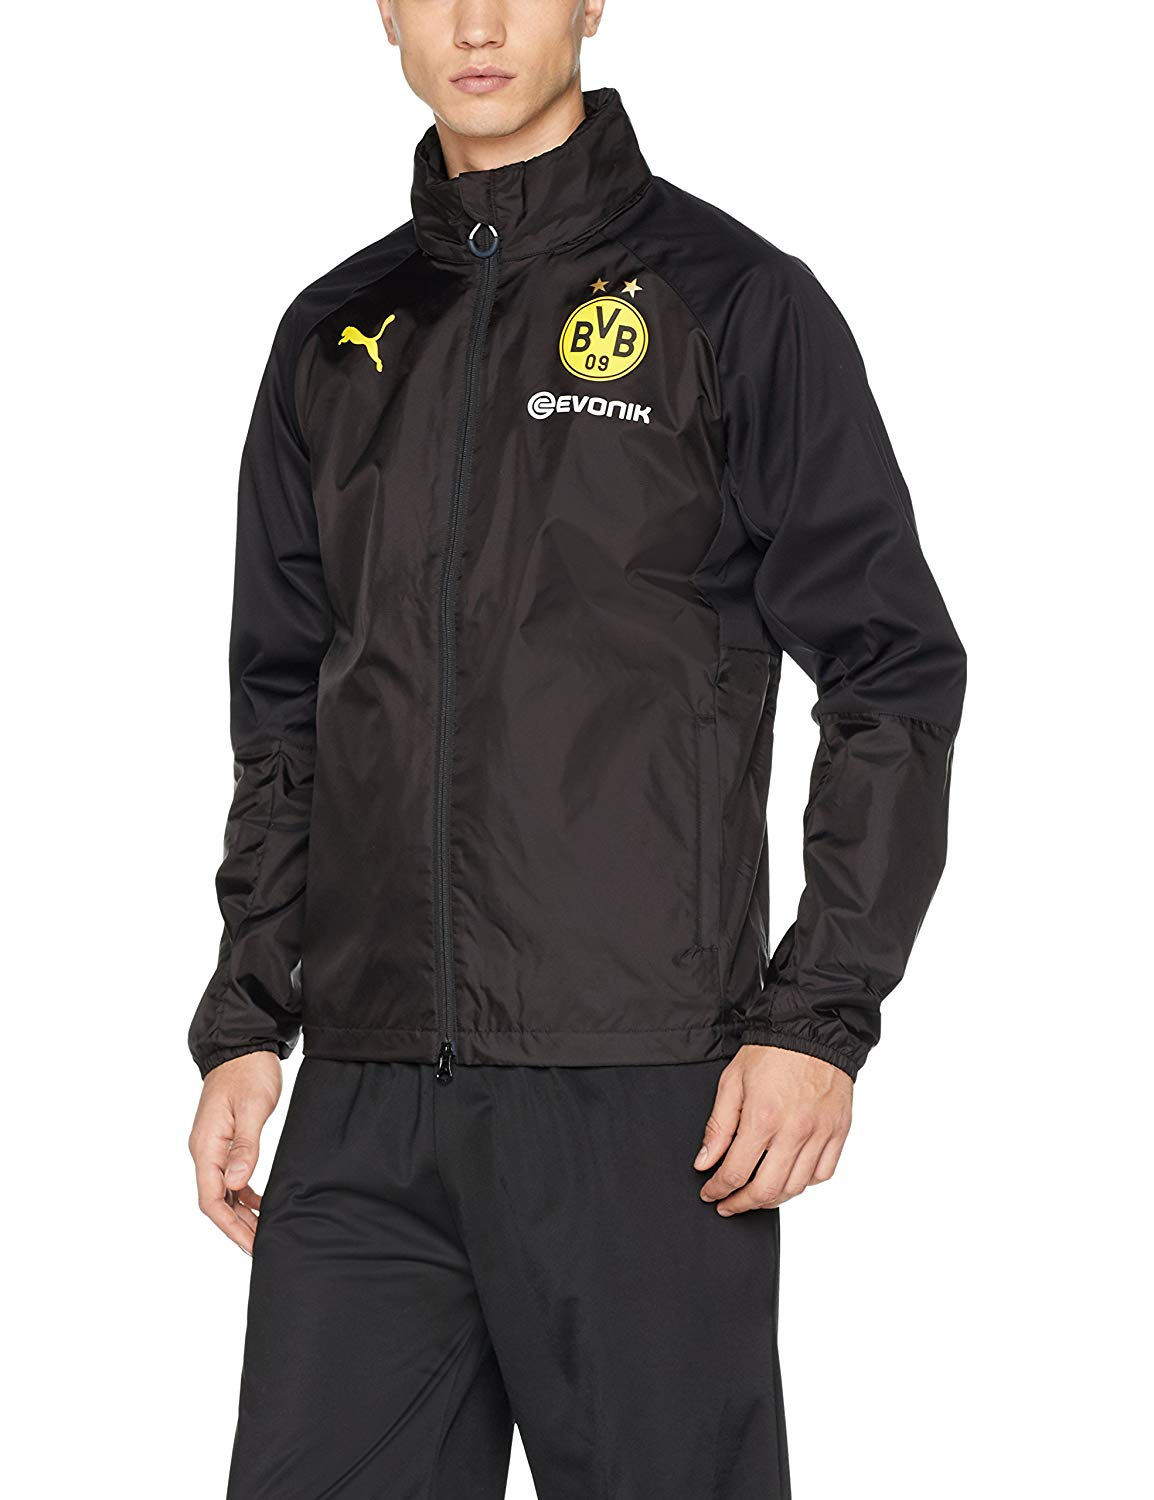 5a5a79763d0f Get Quotations · Borussia Dortmund Rain Jacket 2017   2018 - Black